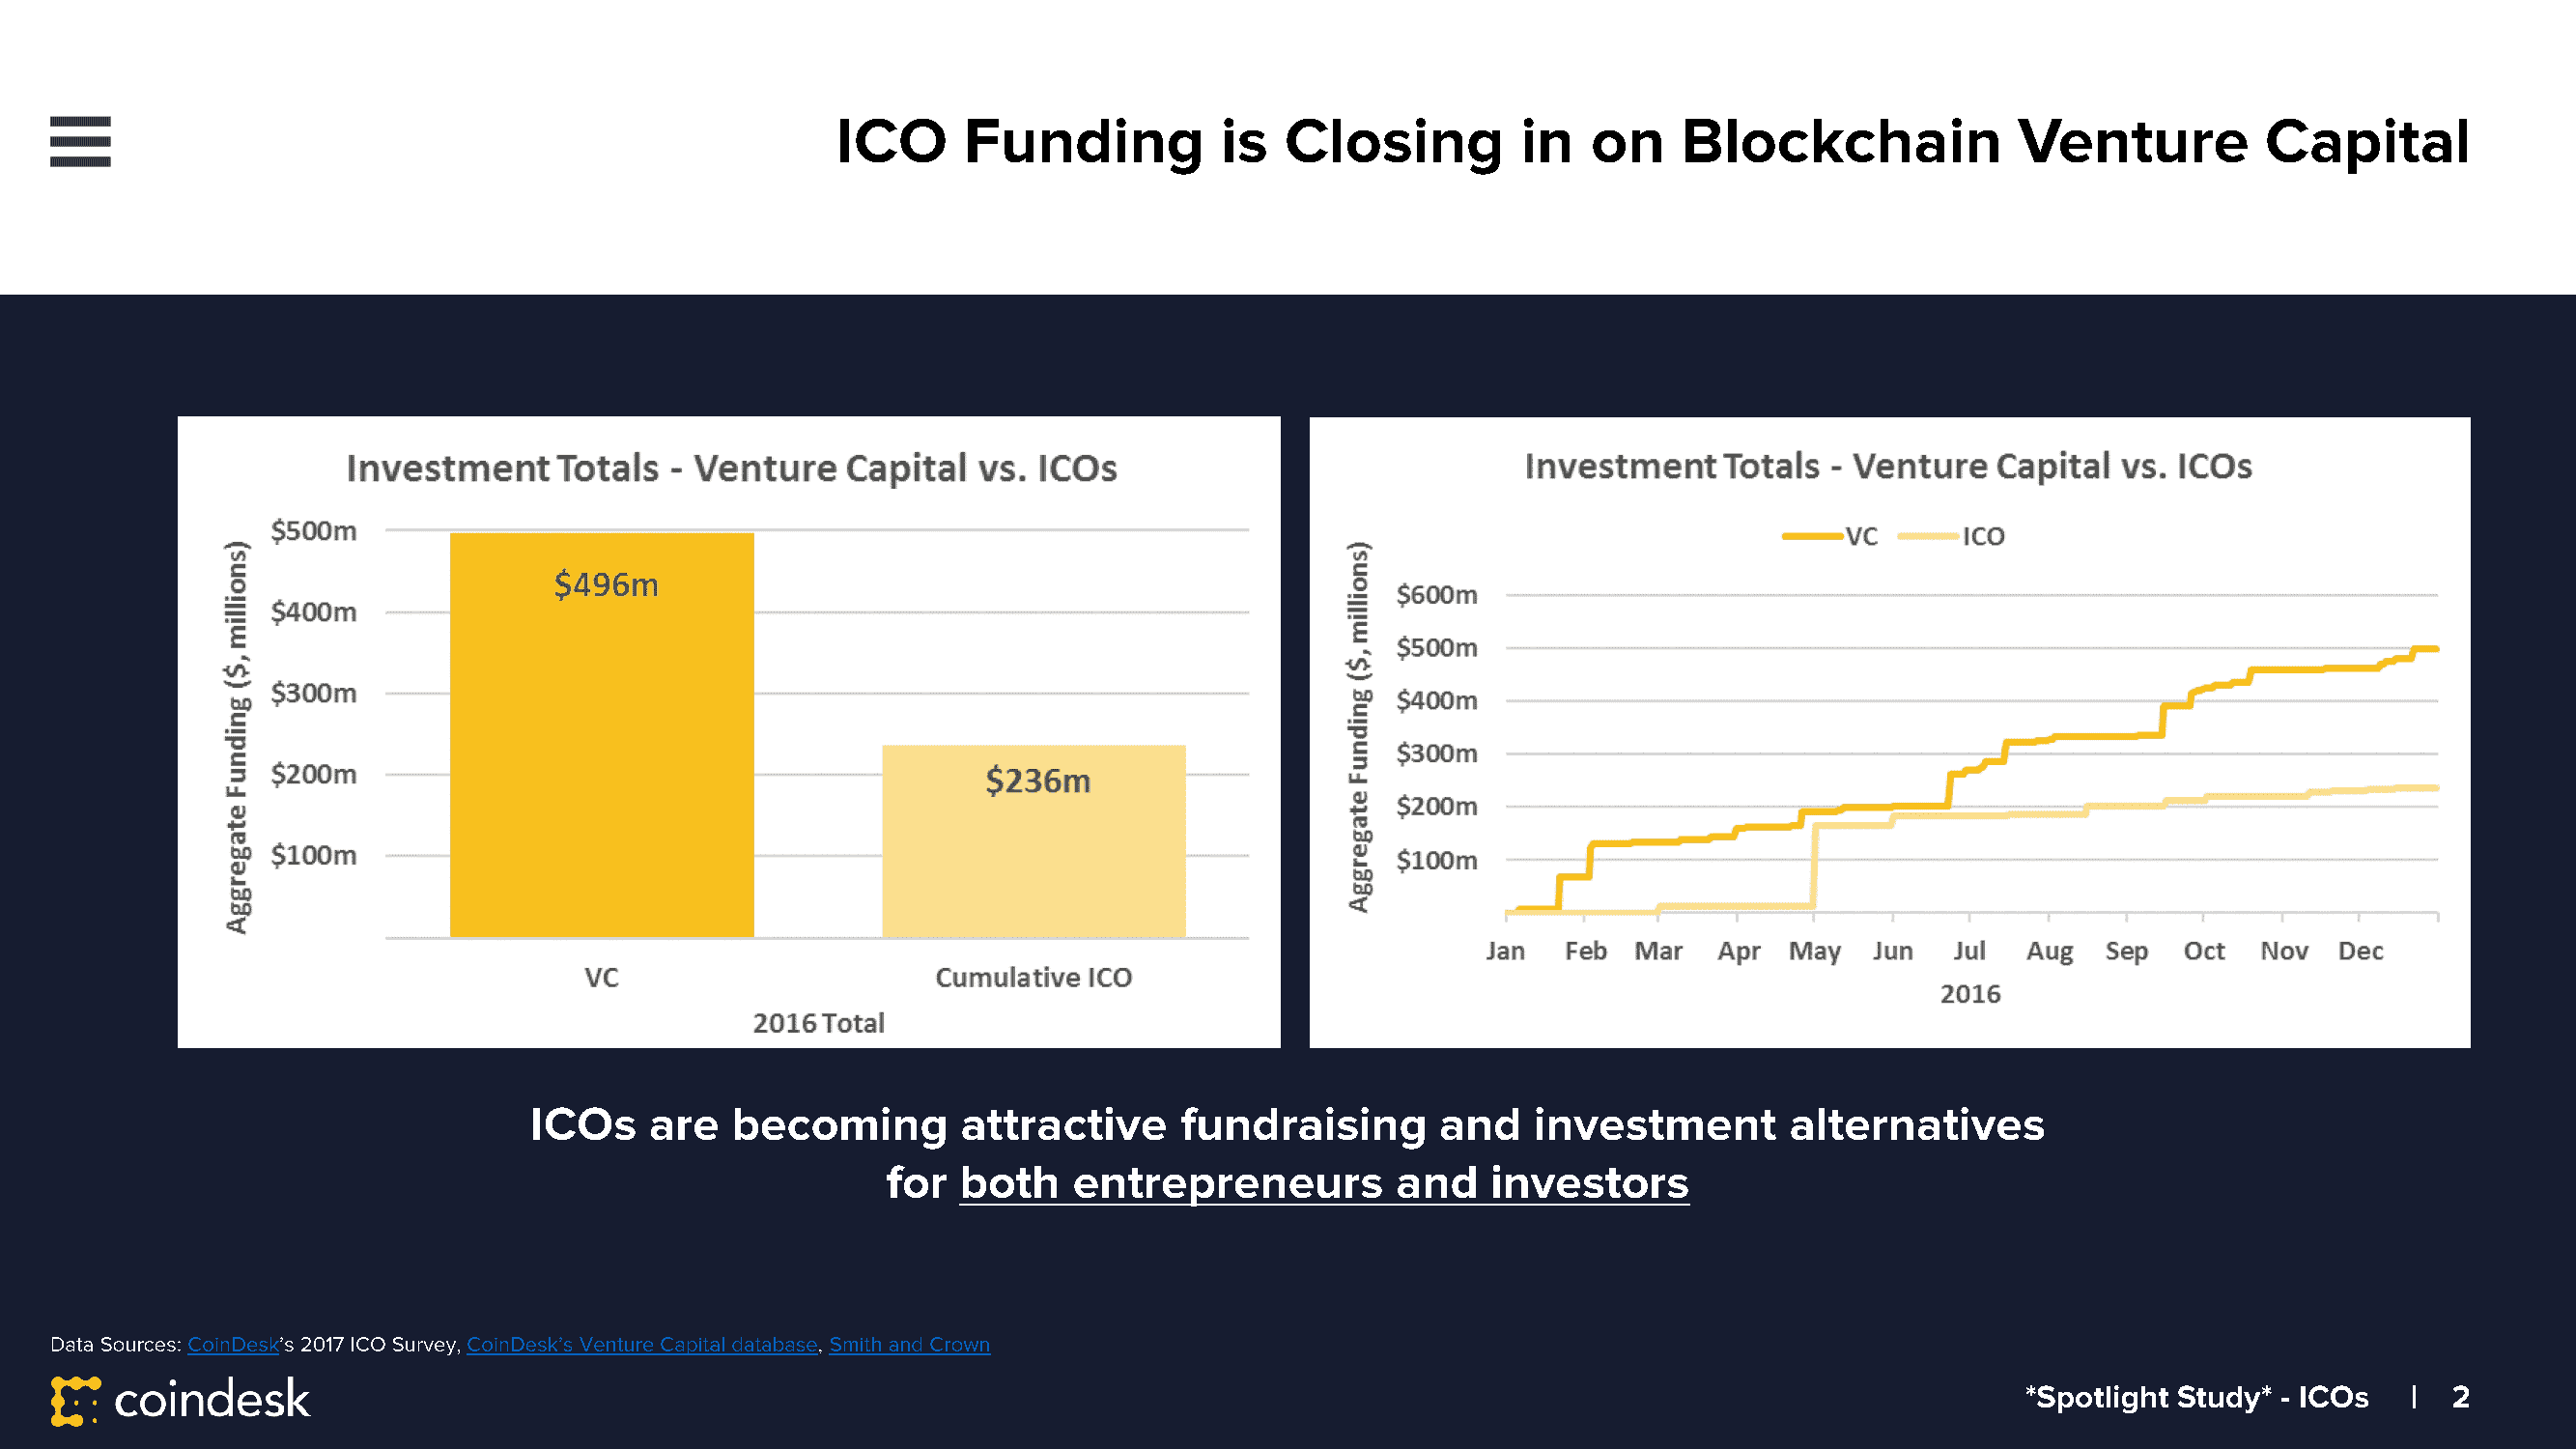 State-of-Blockchain-2016-Year-End-ICO-STANDALONE-DECK-FINAL-1_Page_02.png